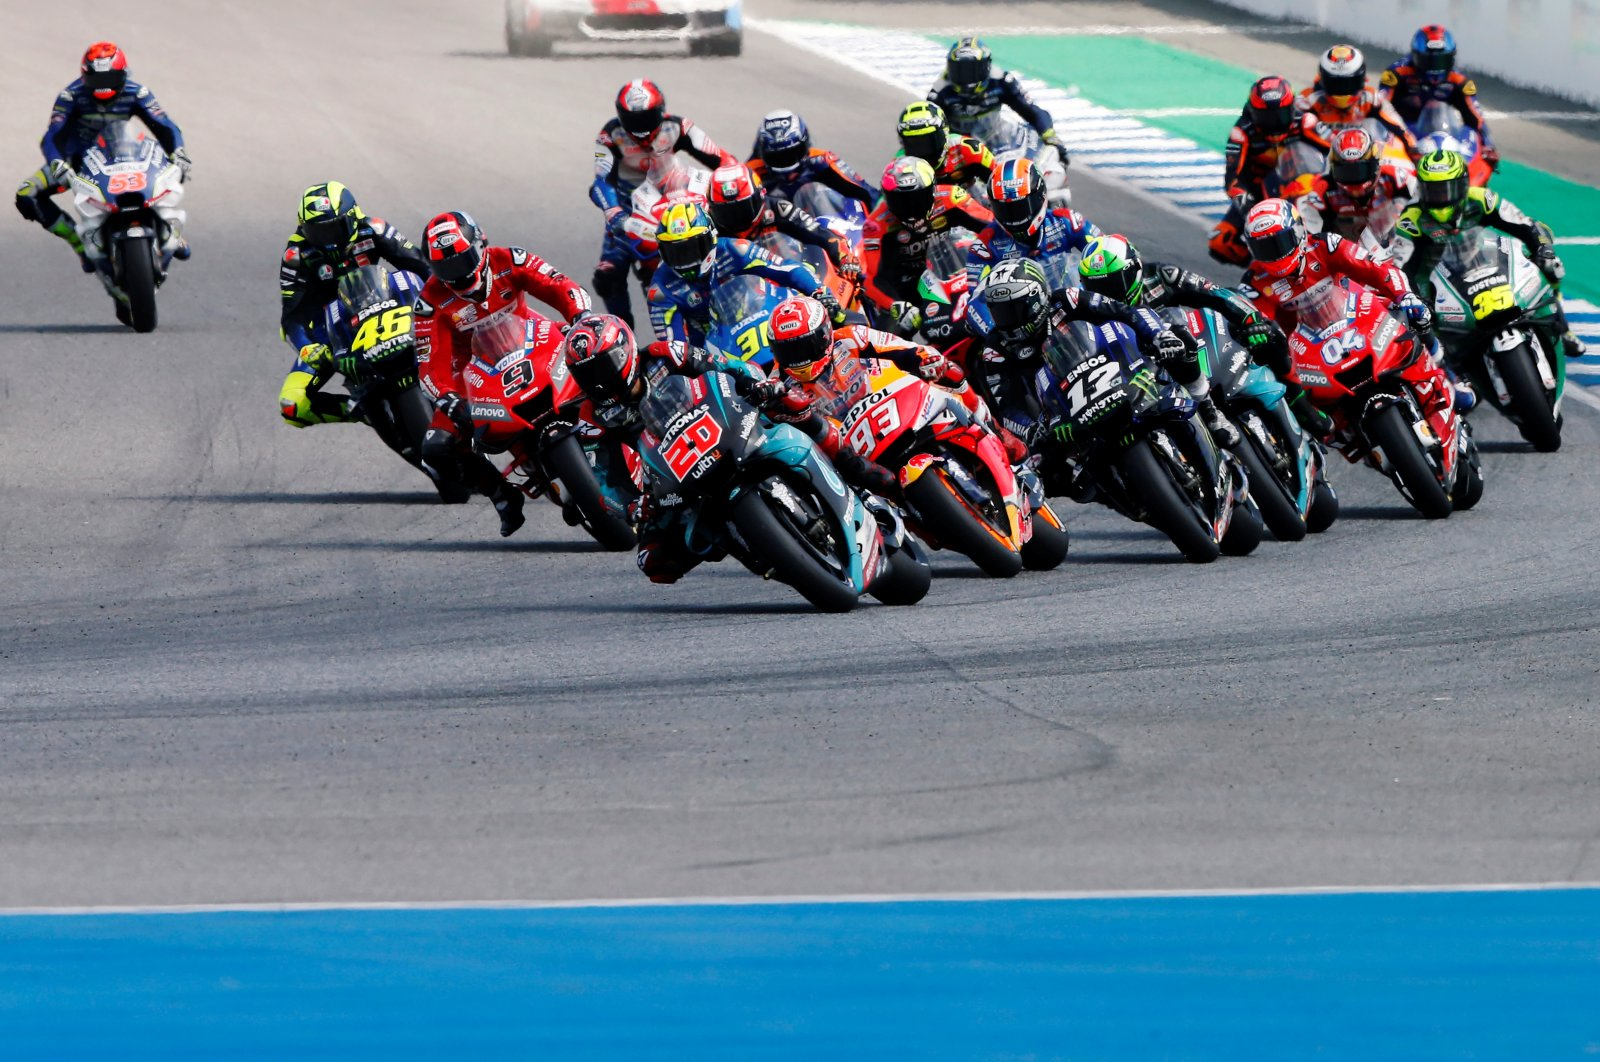 Riders in action during the Thailand GP, in Buriram, Thailand, Oct. 6, 2019. (Reuters Photo)